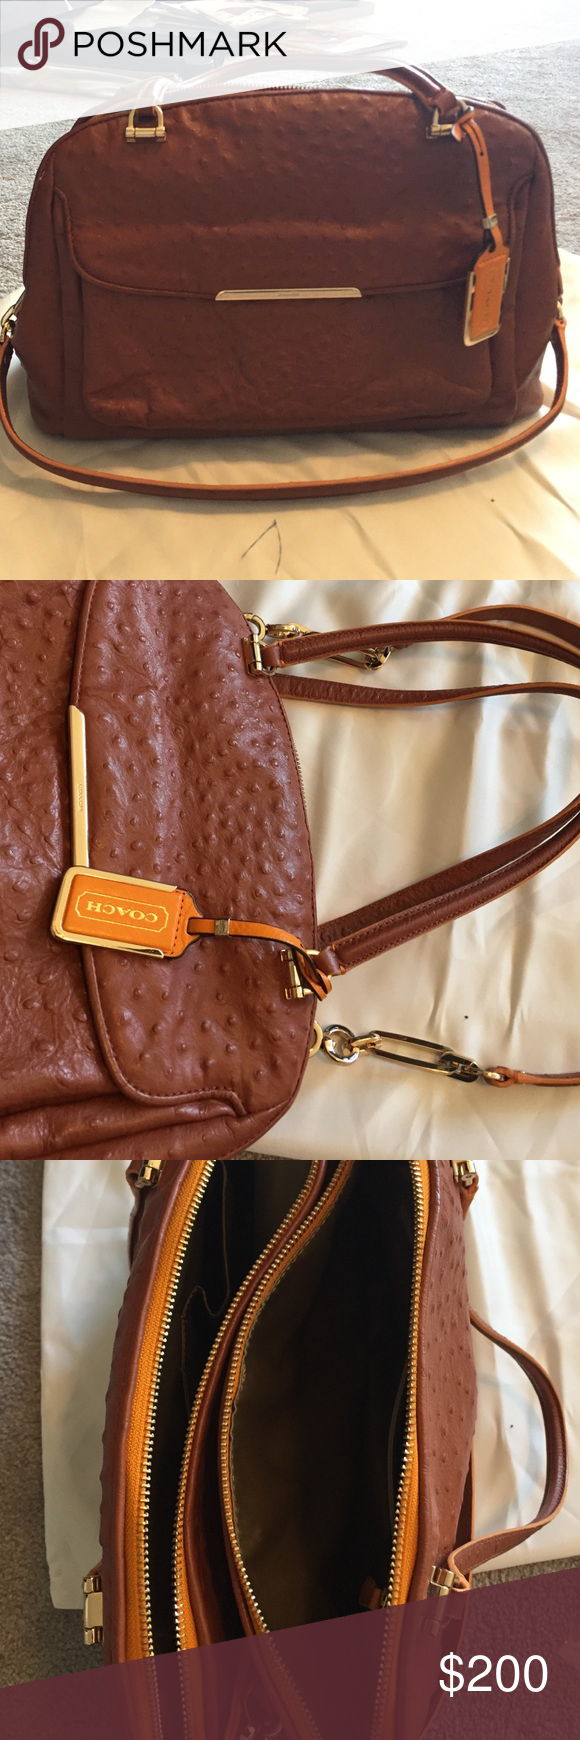 Rare coach pebbled leather bag Beautiful chestnut leather with gold hardware and orange trim. Excellent condition comes with dust bag. Long adjustable strap and short handles 3 large compartments 2 that zip and inside small pockets Coach Bags Satchels